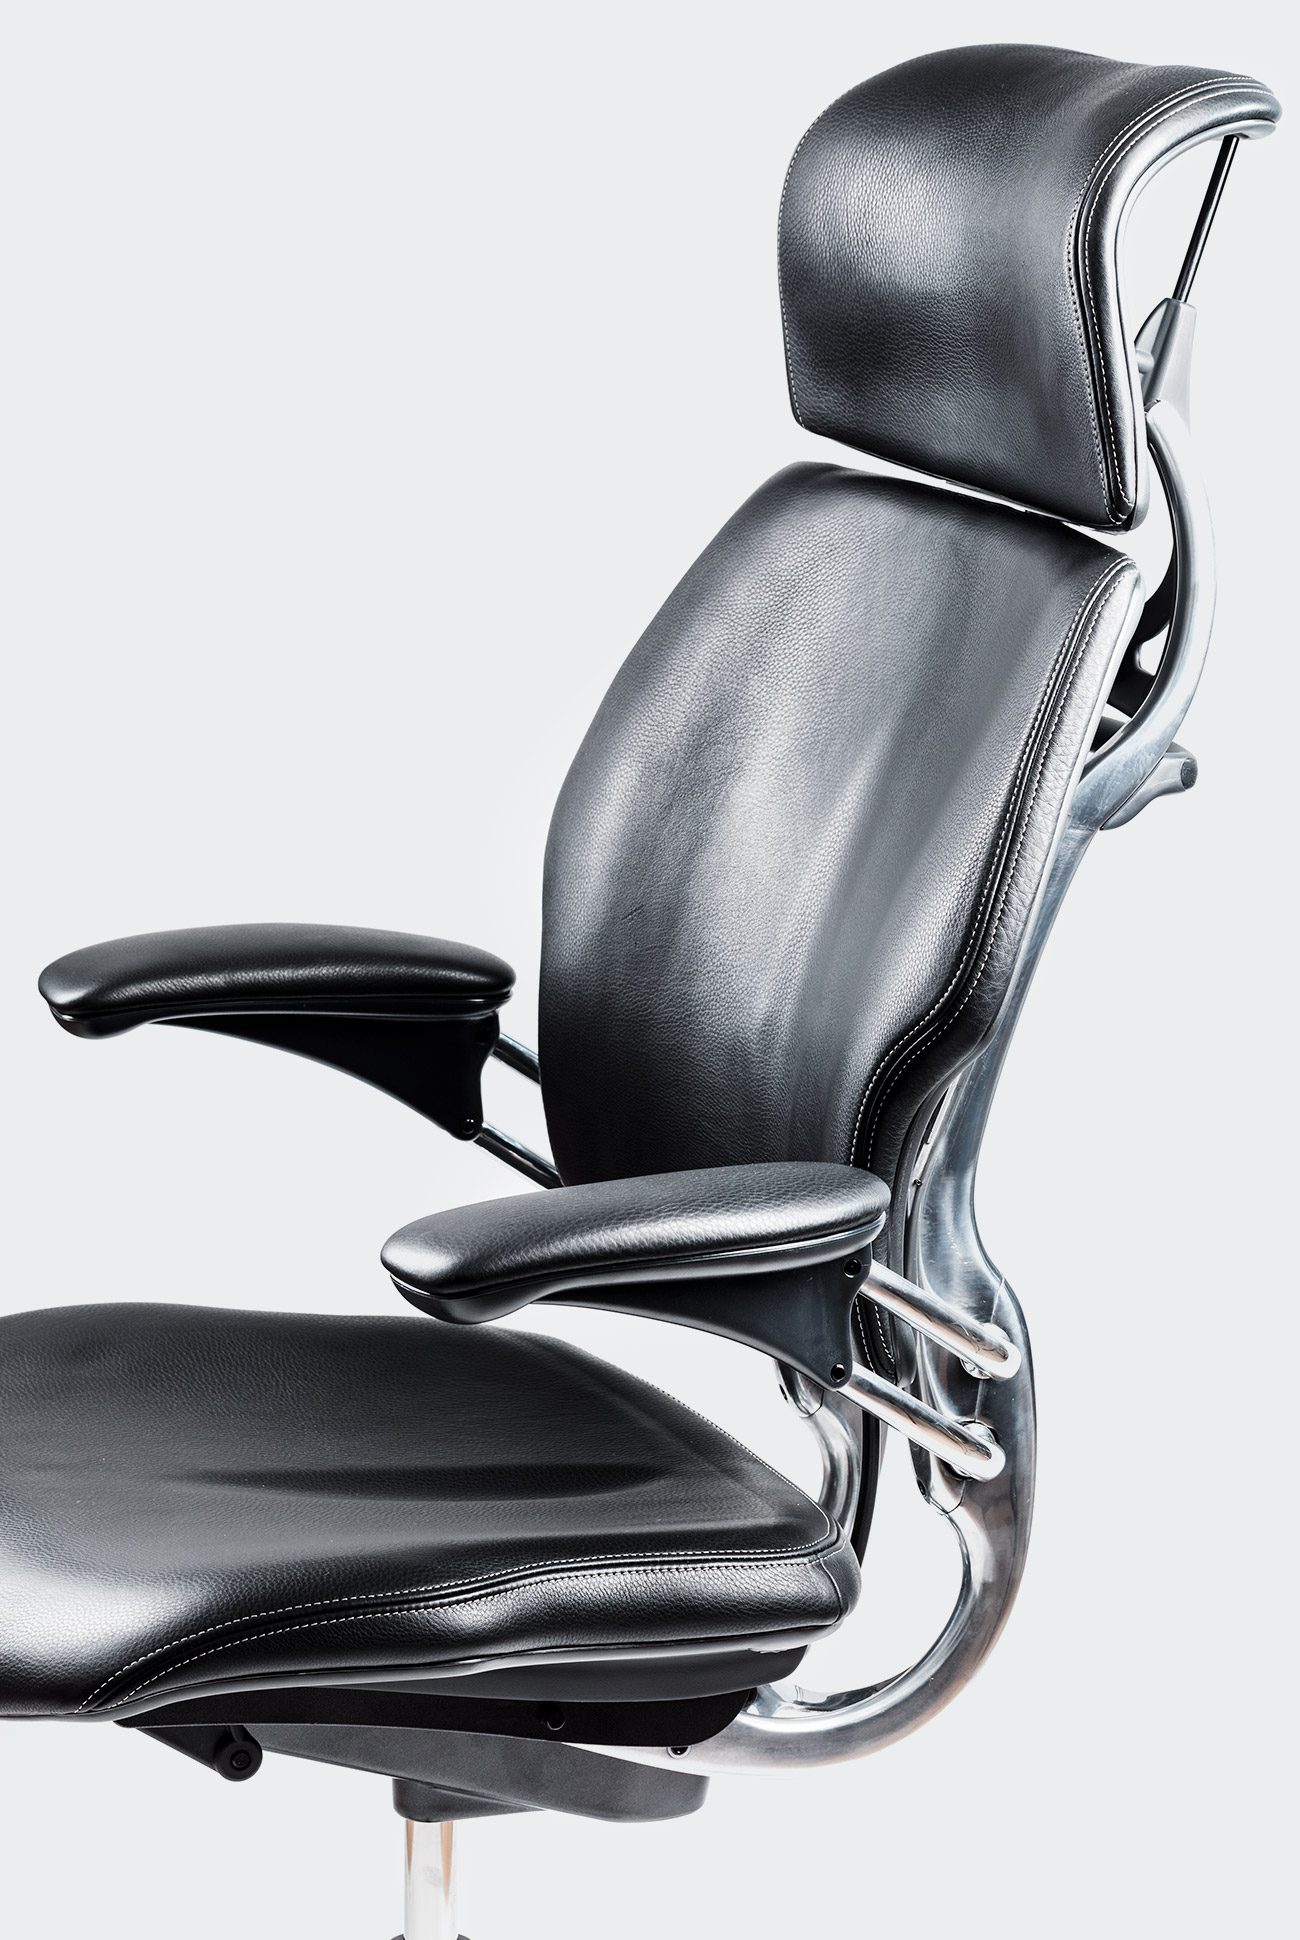 Best Office Chairs For Back Support >> The 14 Best Office Chairs Of 2019